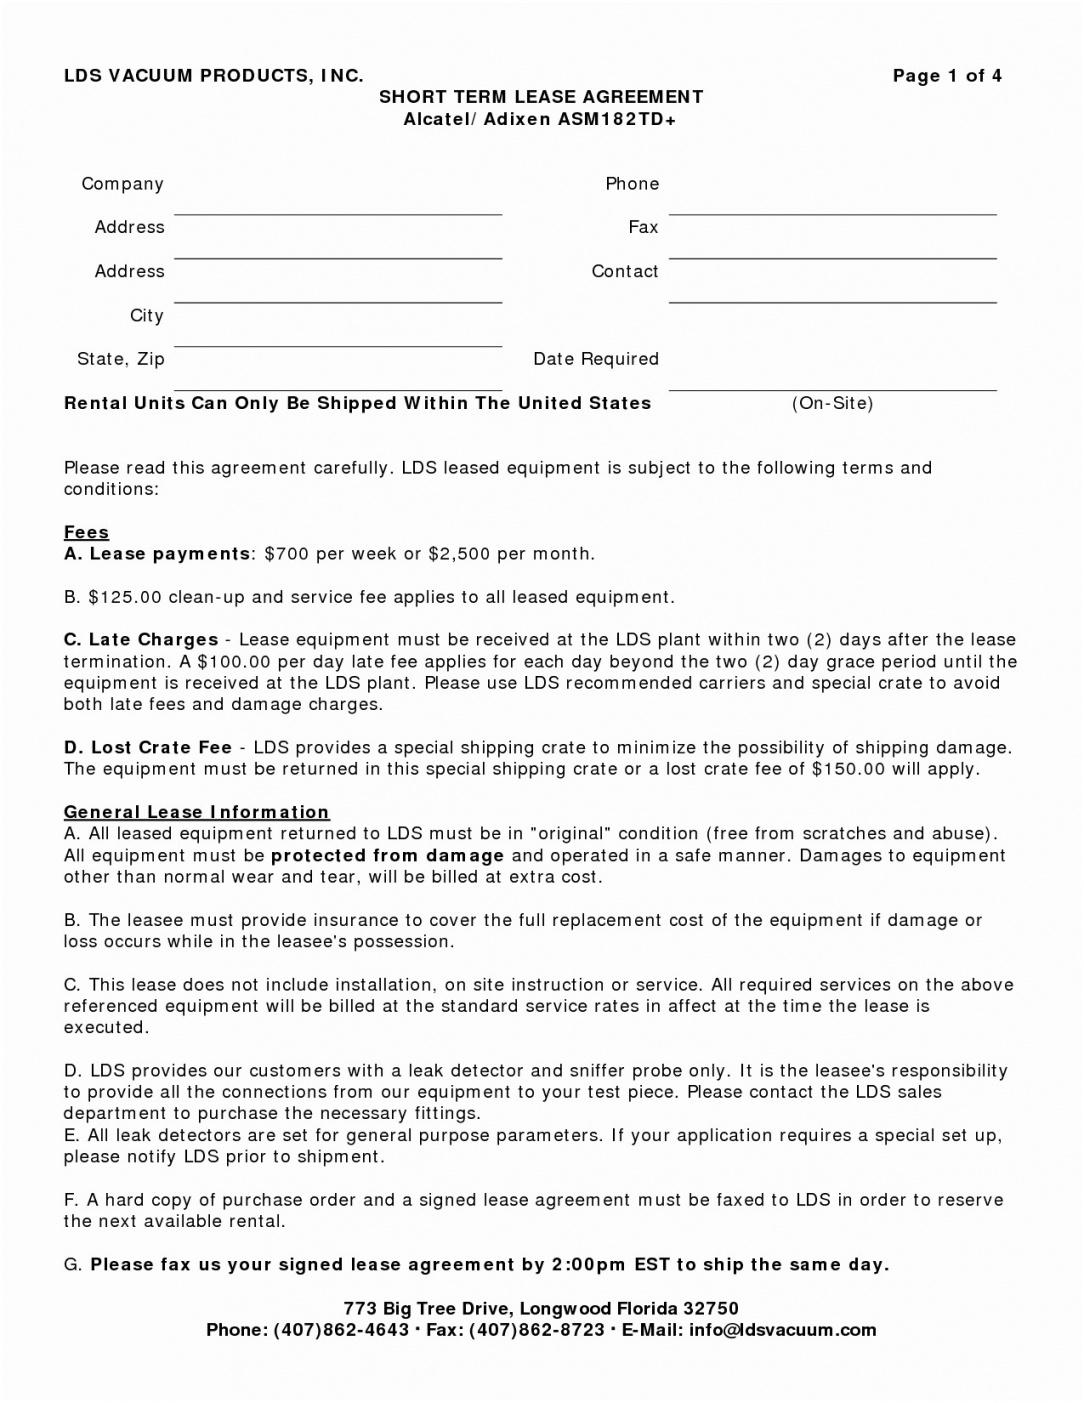 our auto purchase agreement example mughals taxi owner and driver lease taxi driver contract agreement